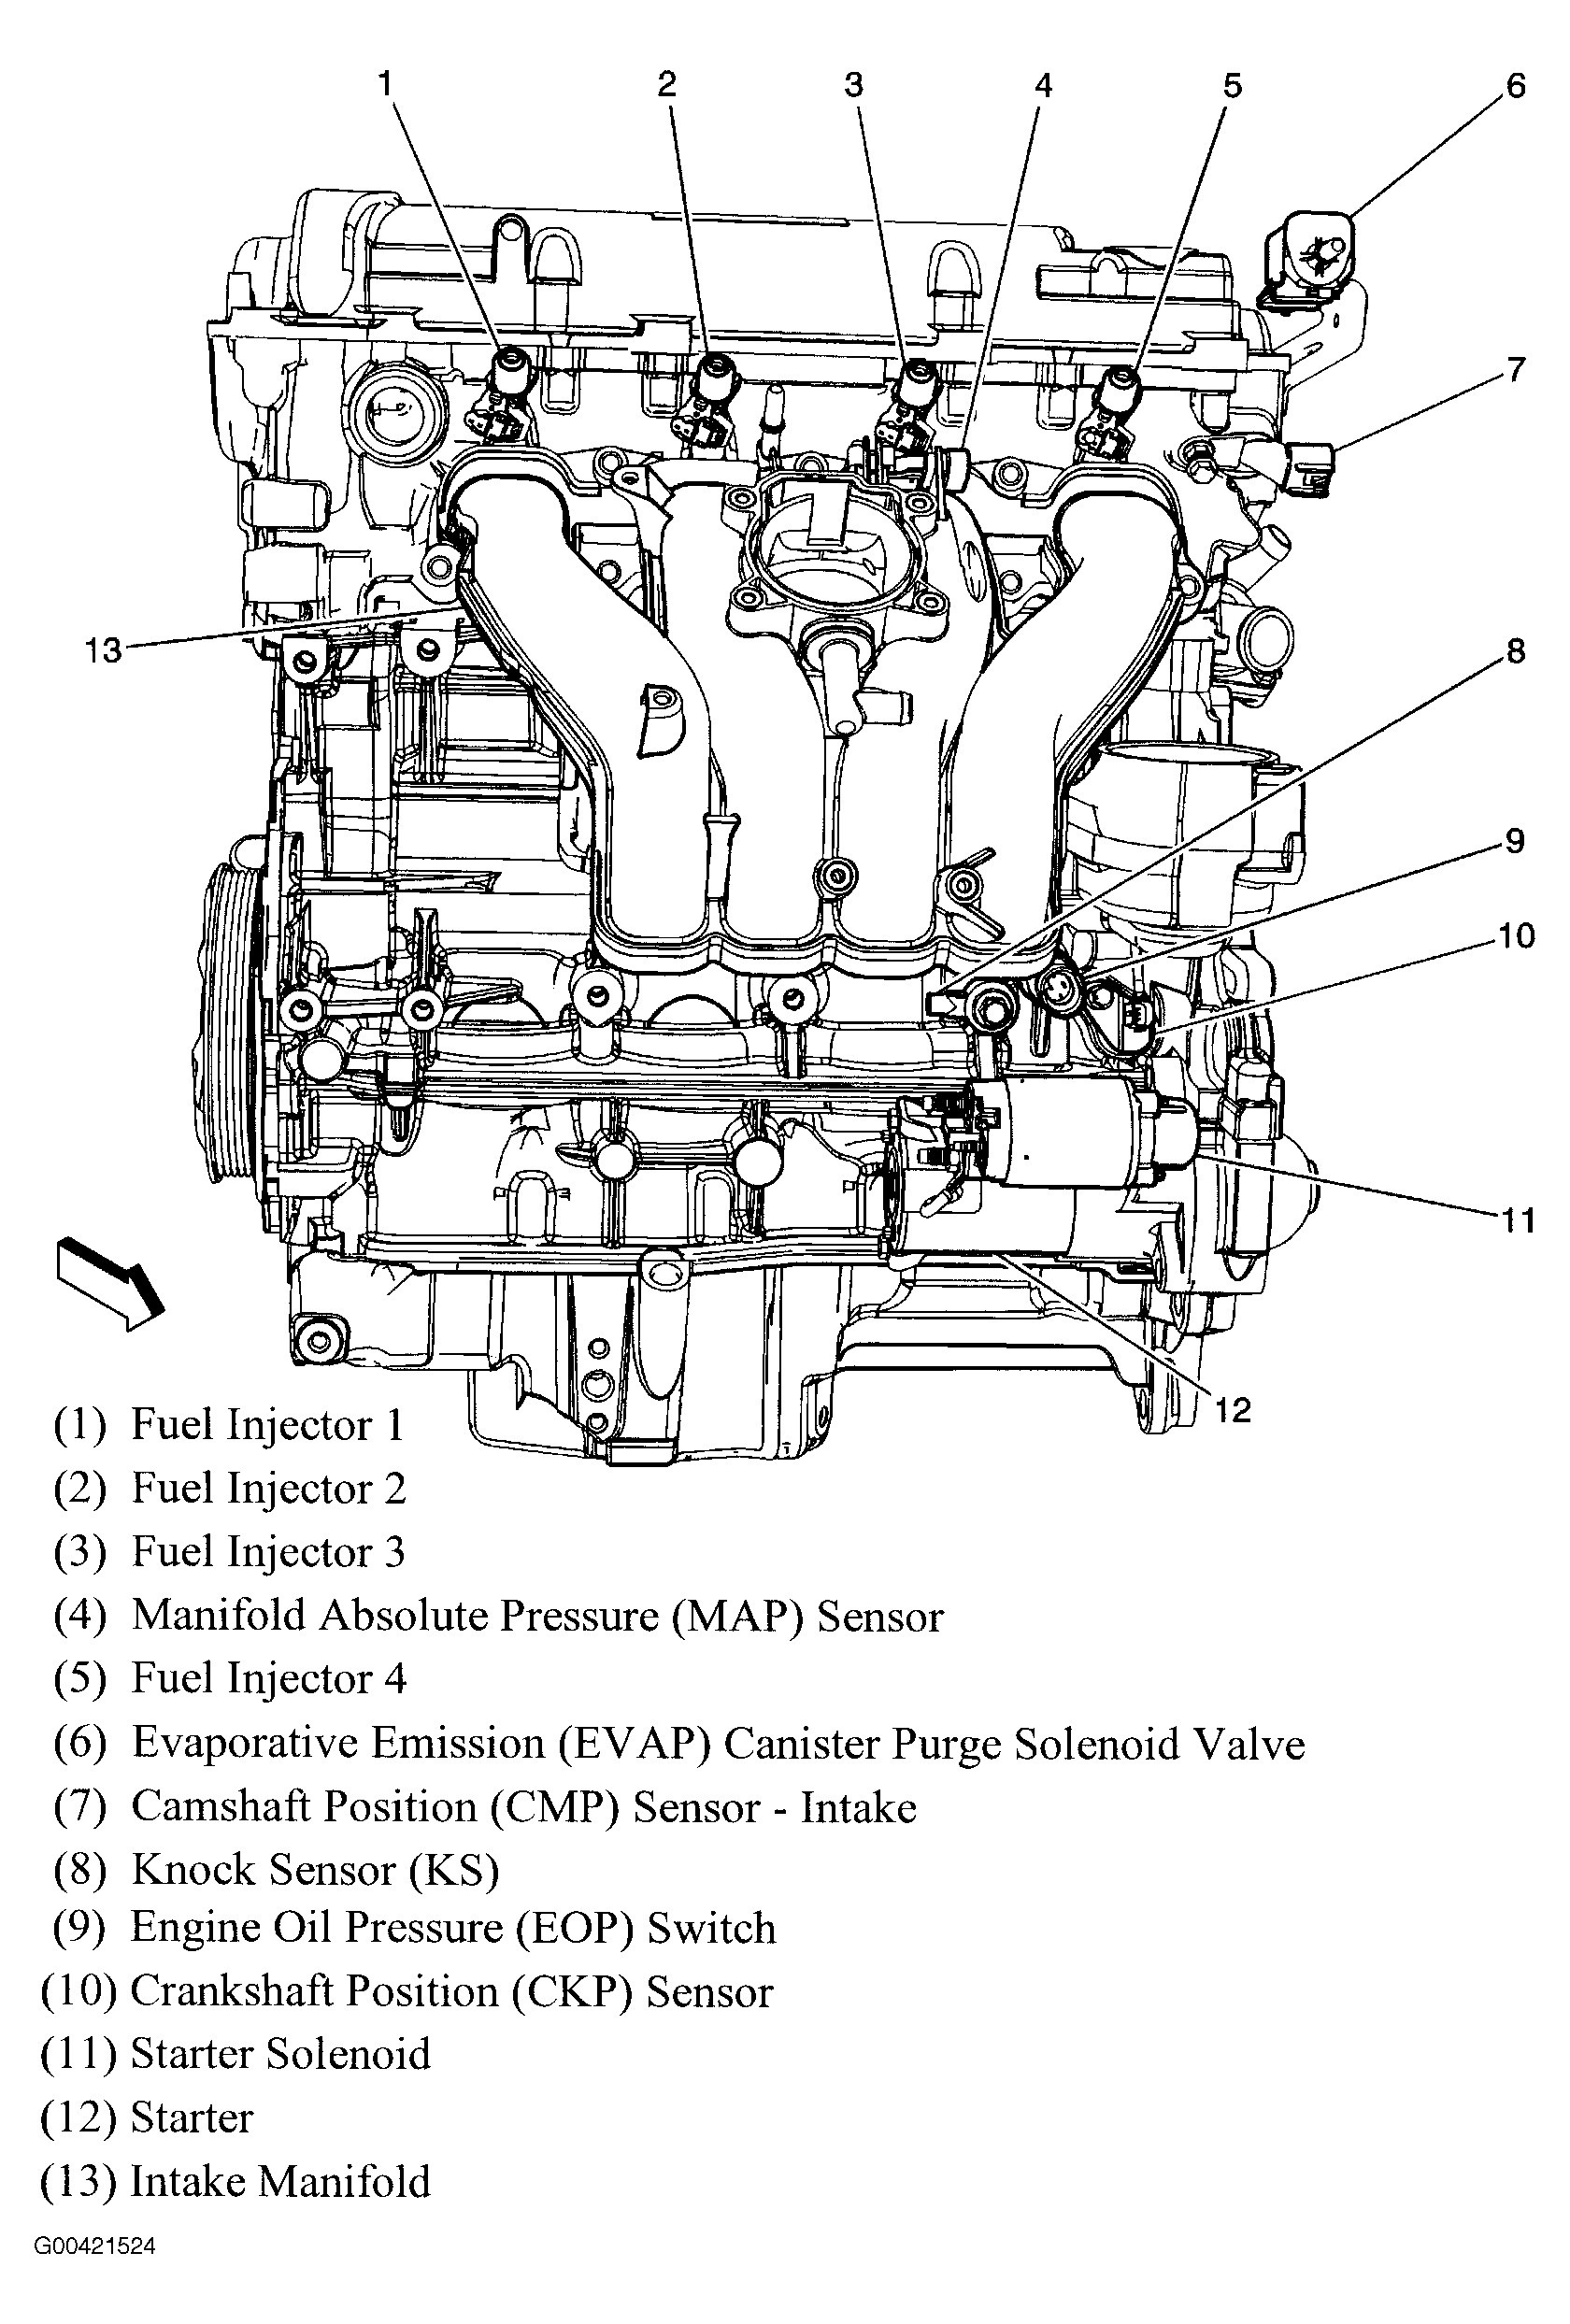 hight resolution of pontiac 3 1 v6 engine diagram wiring diagram list 3 1 v6 engine diagram